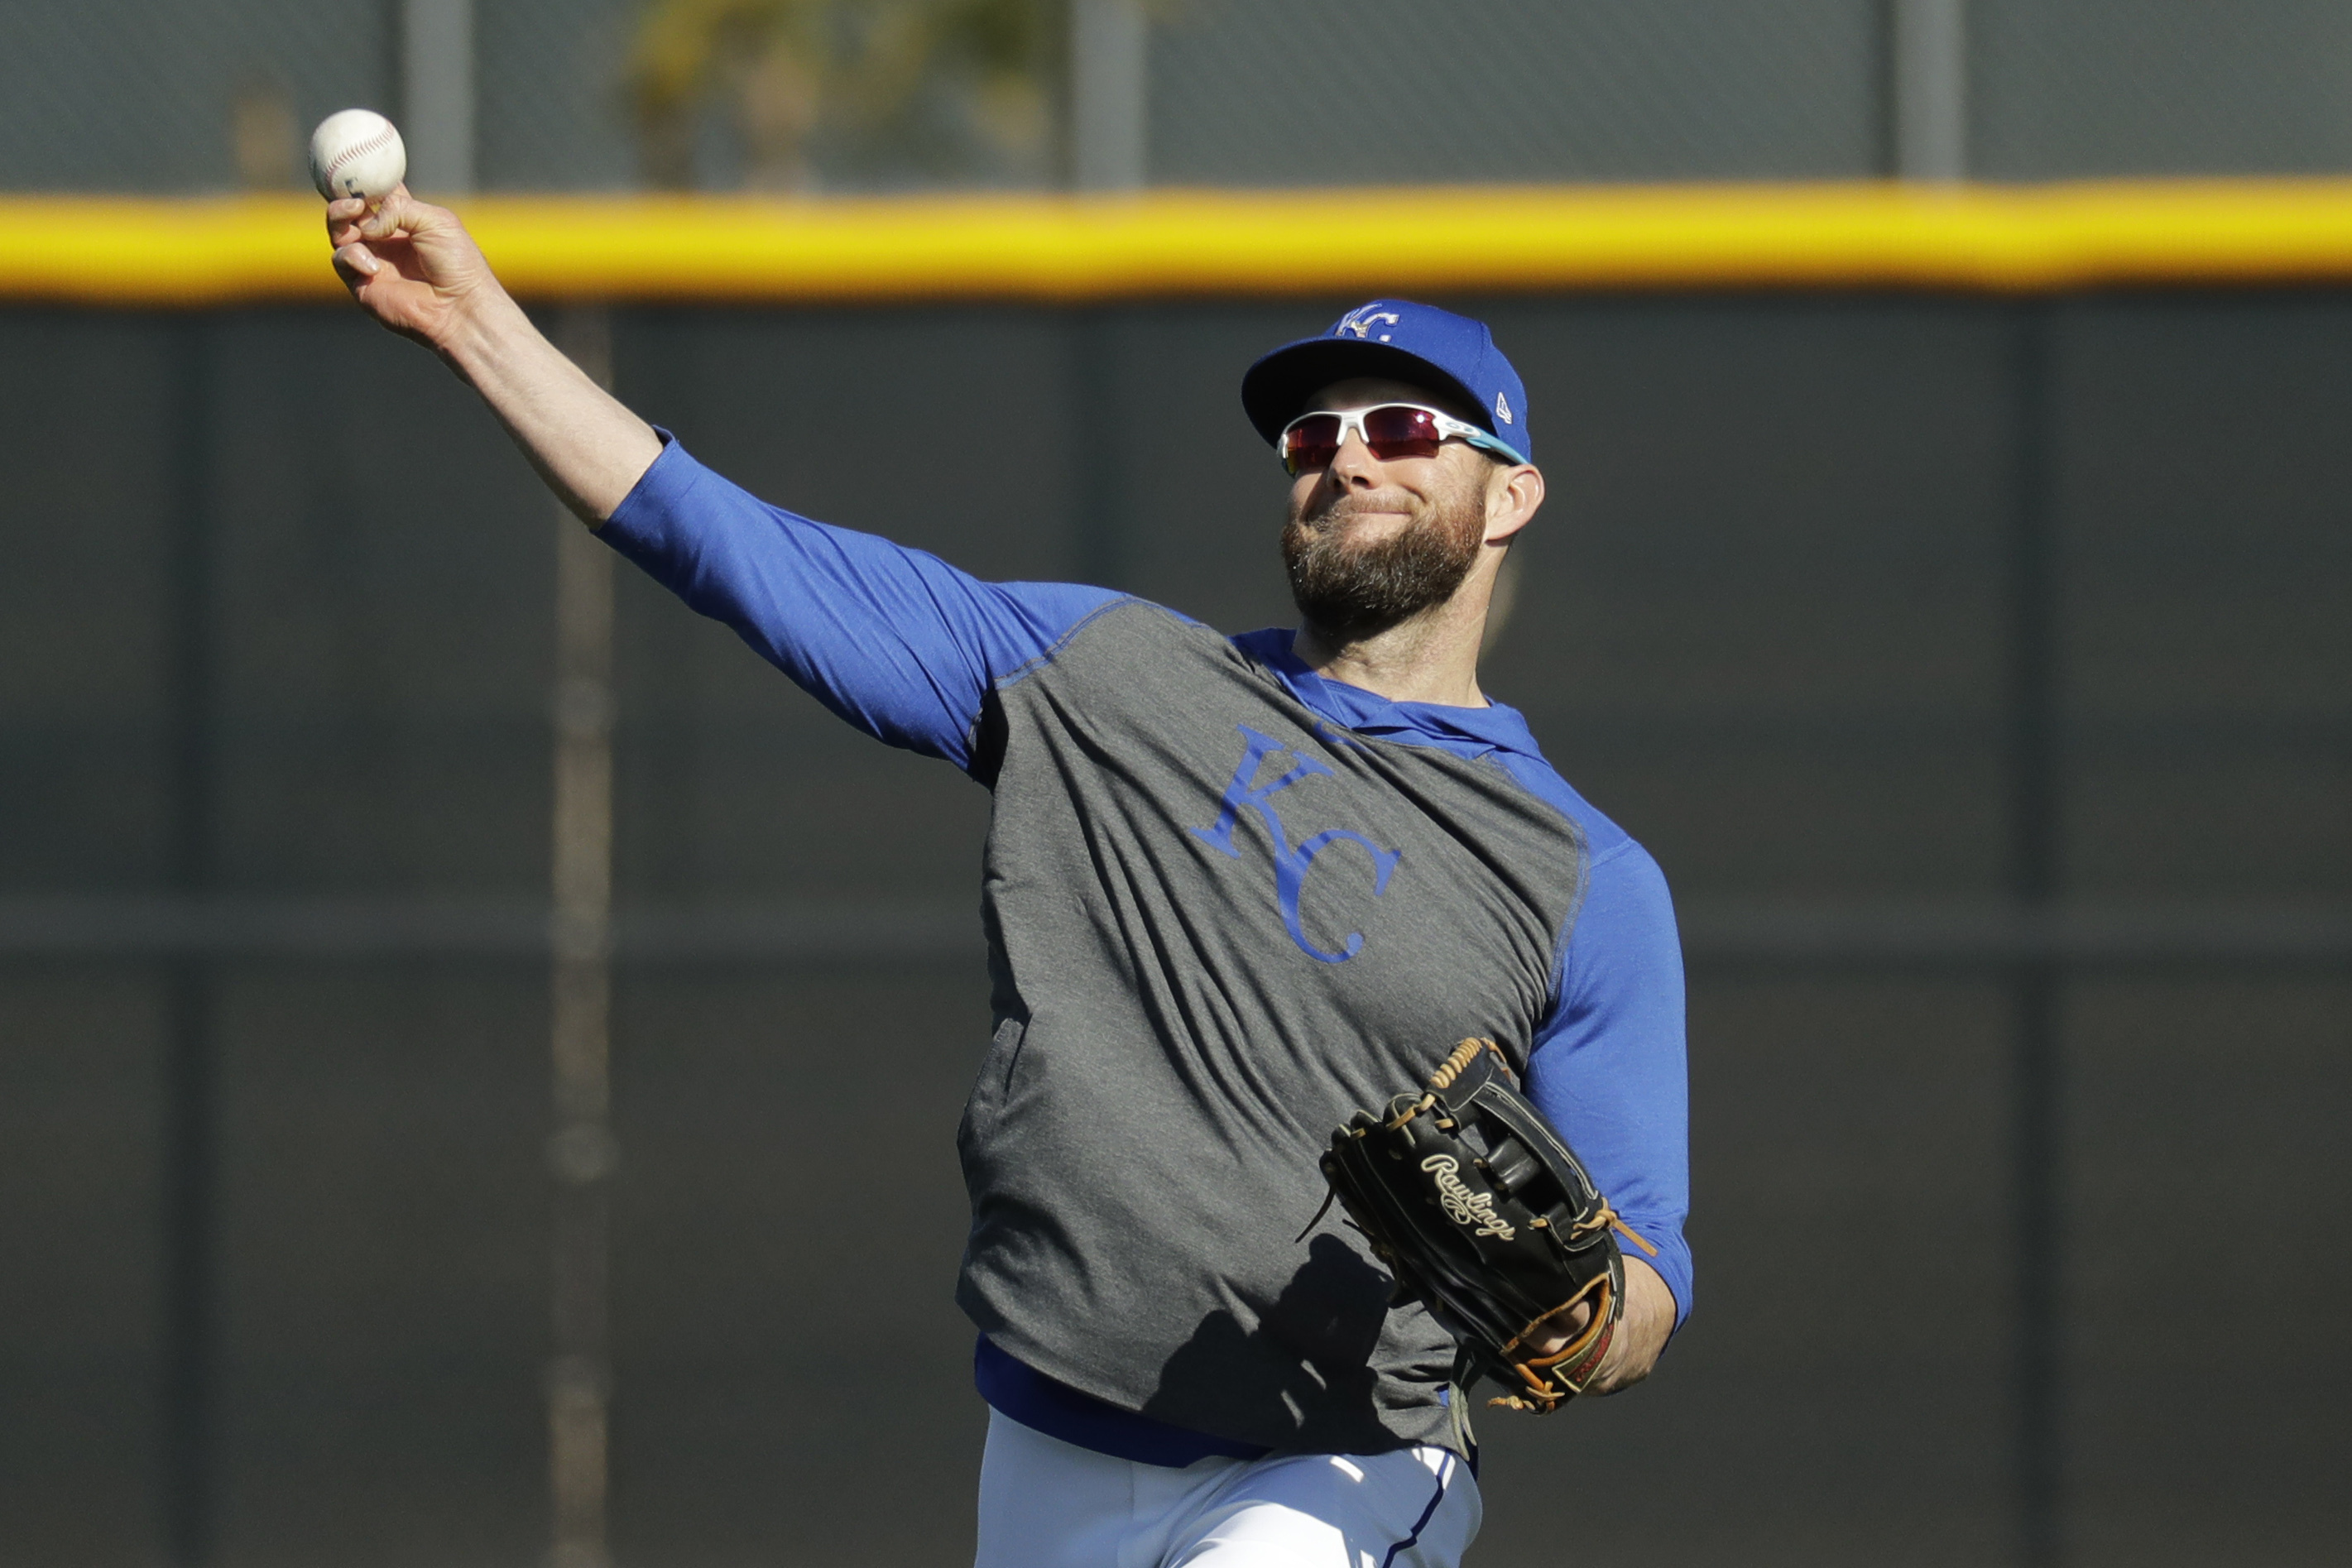 Gordon remains amid Royals rebuild, eager to finish in KC